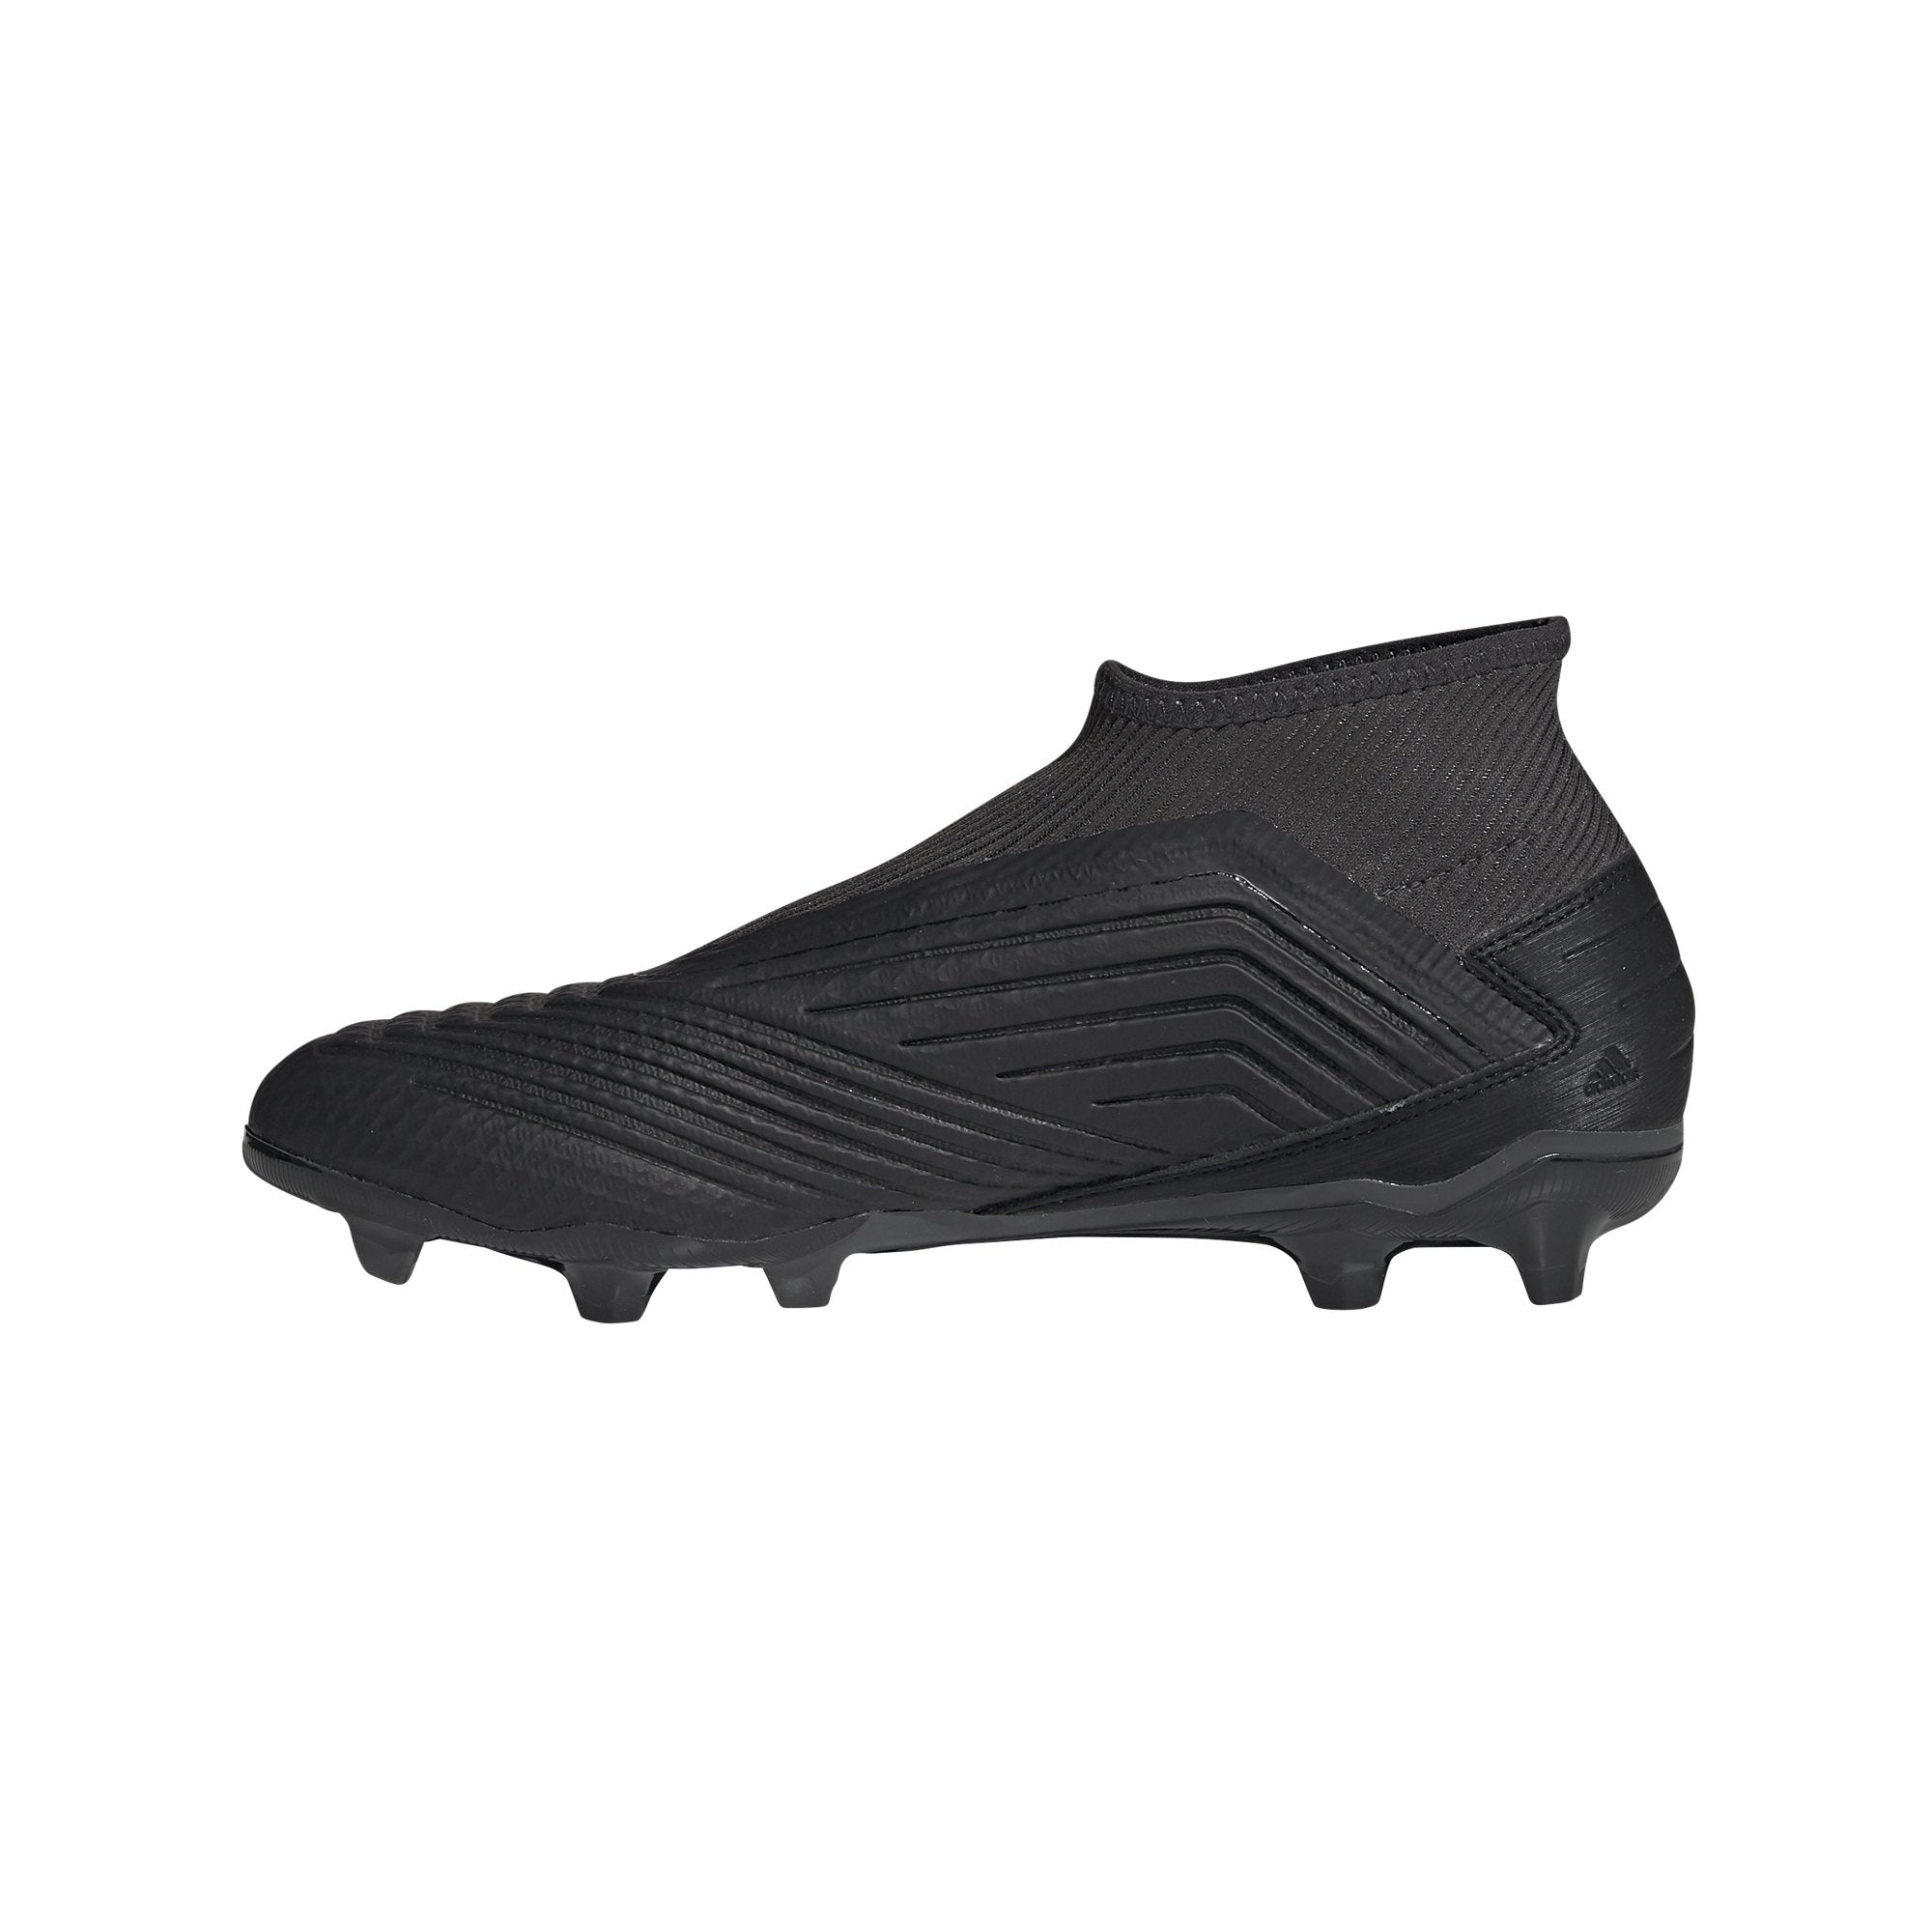 Adidas Mens Predator 19.3 Firm Ground Boots - core black/gold met./utility black SP-FOOTWEAR-MENS Adidas